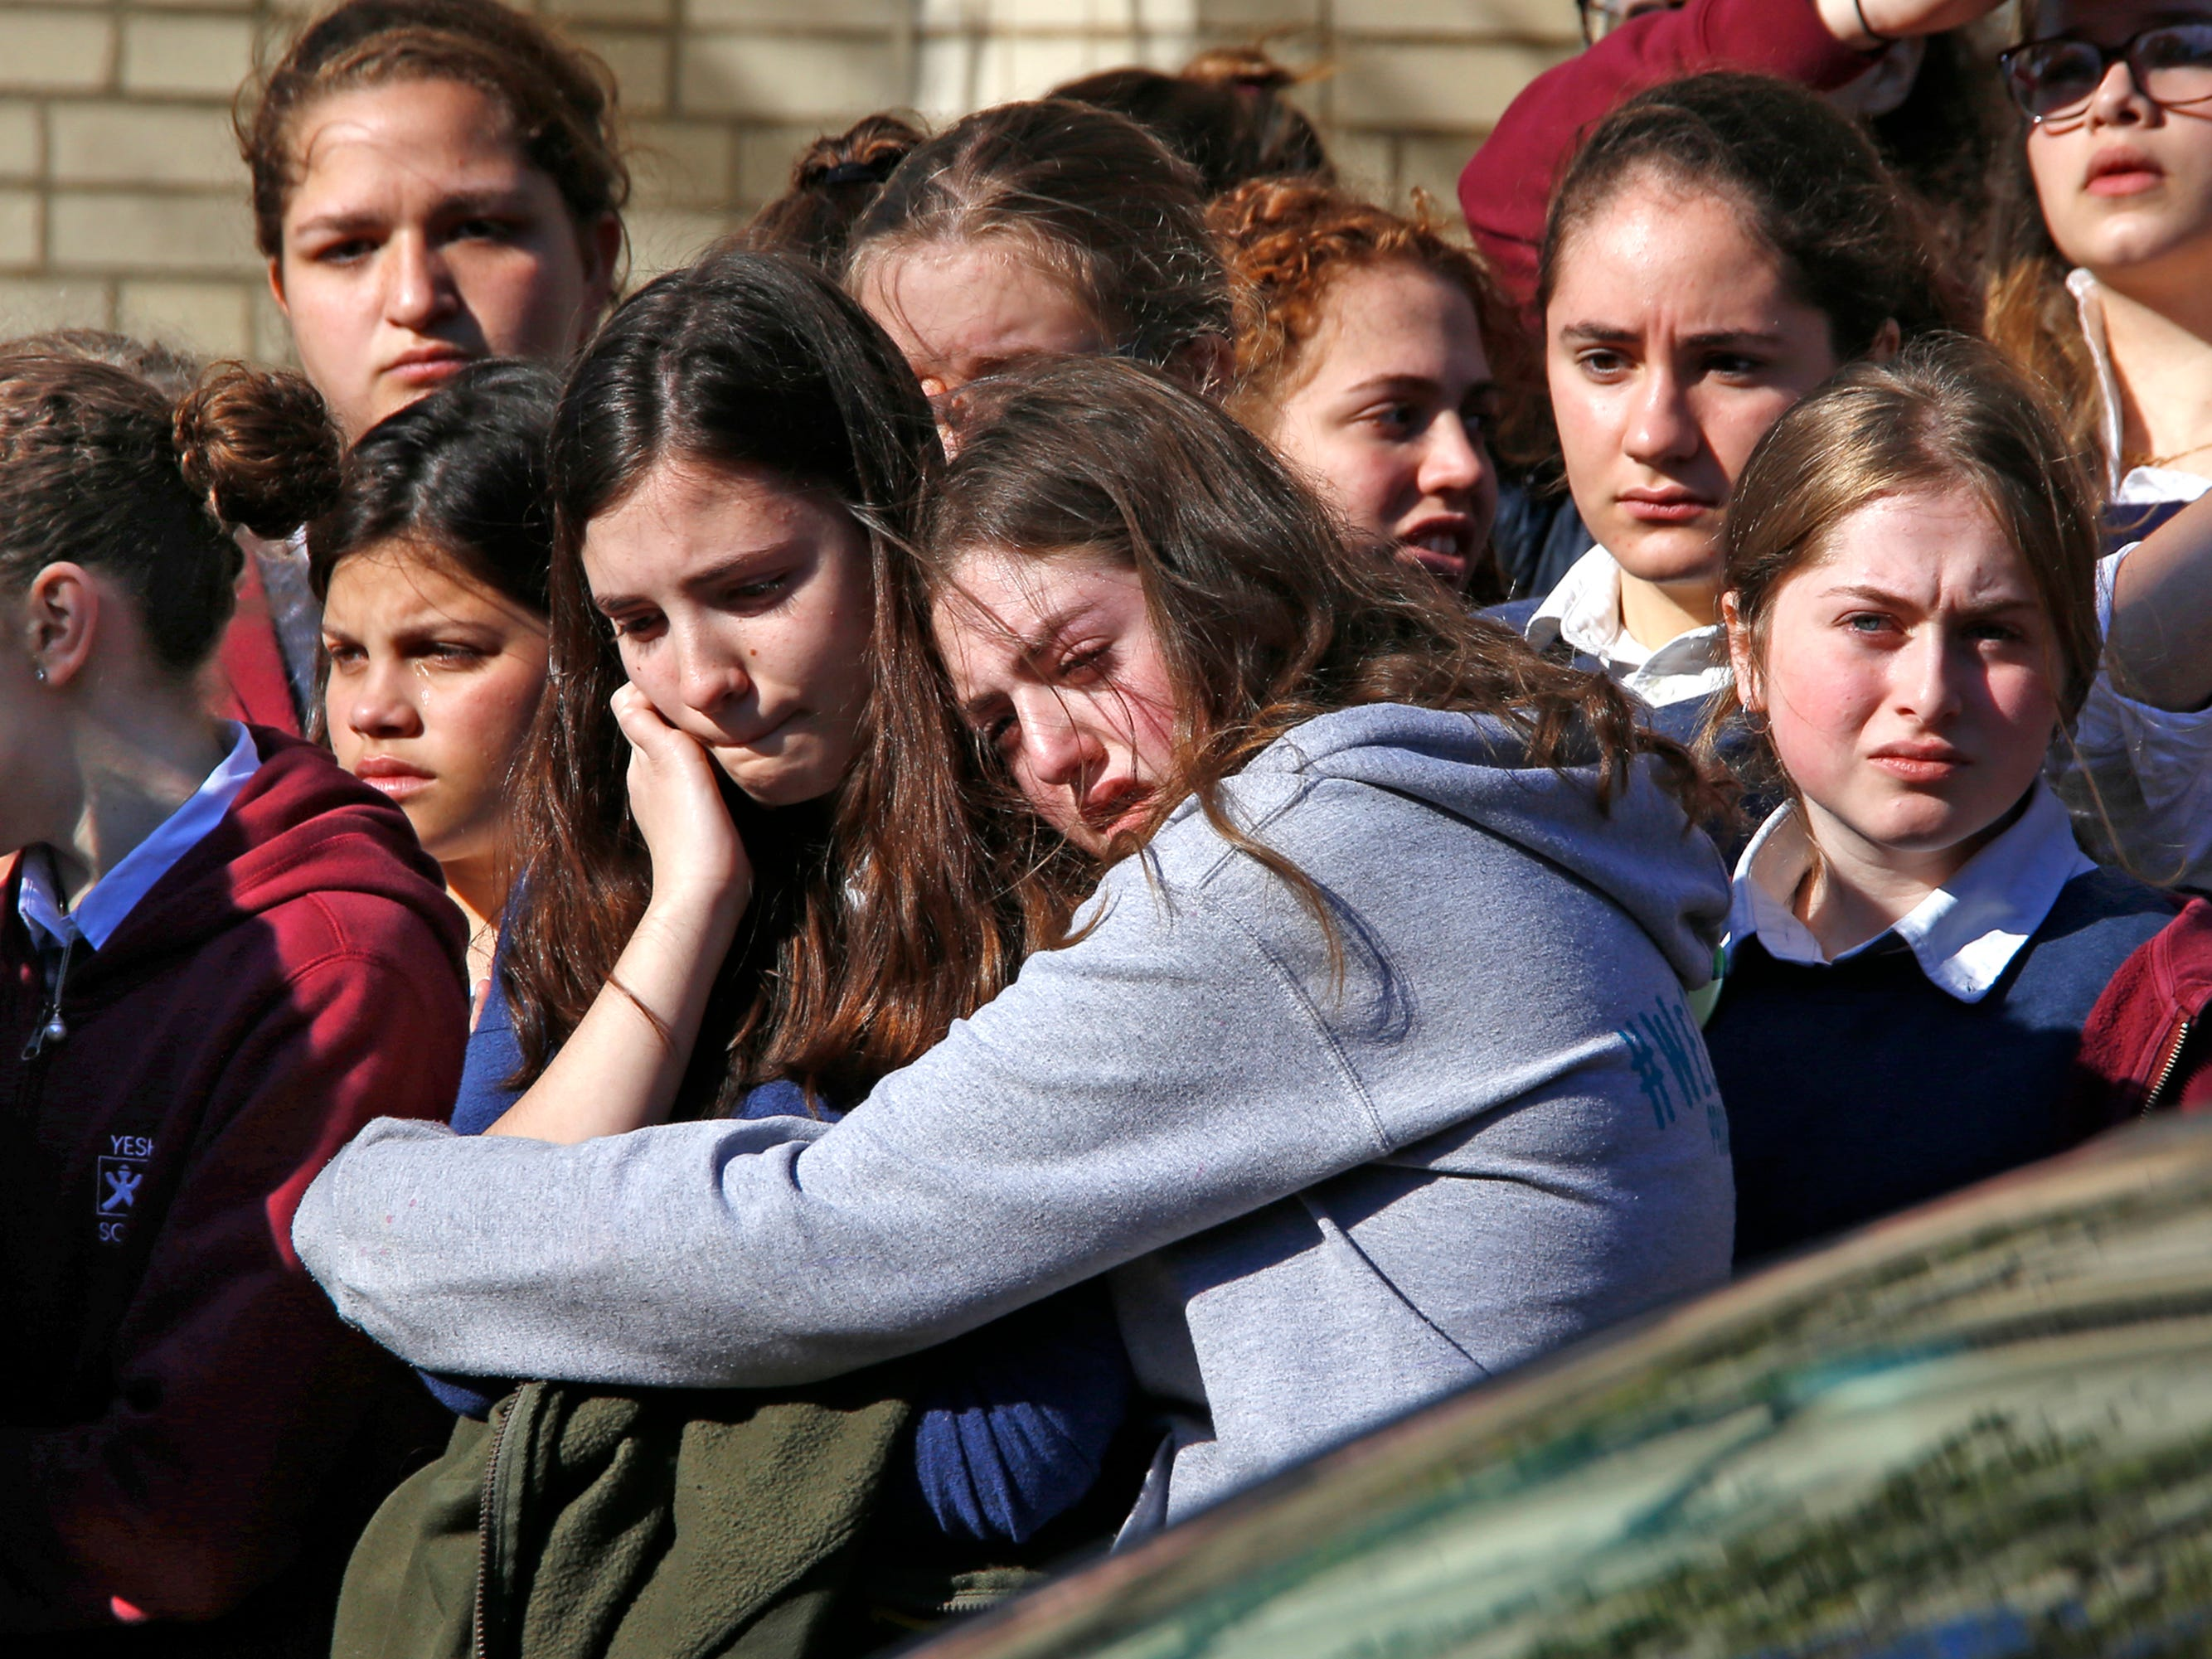 Students from the Yeshiva School in the Squirrel Hill neighborhood of Pittsburgh stand outside Beth Shalom Synagogue after attending the funeral service for Joyce Fienberg, Wednesday, Oct. 31, 2018. Joyce Fienberg, 75, was one of 11 people killed when a gunman opened fire during worship services at the Tree of Life Synagogue on Saturday, Oct. 27.